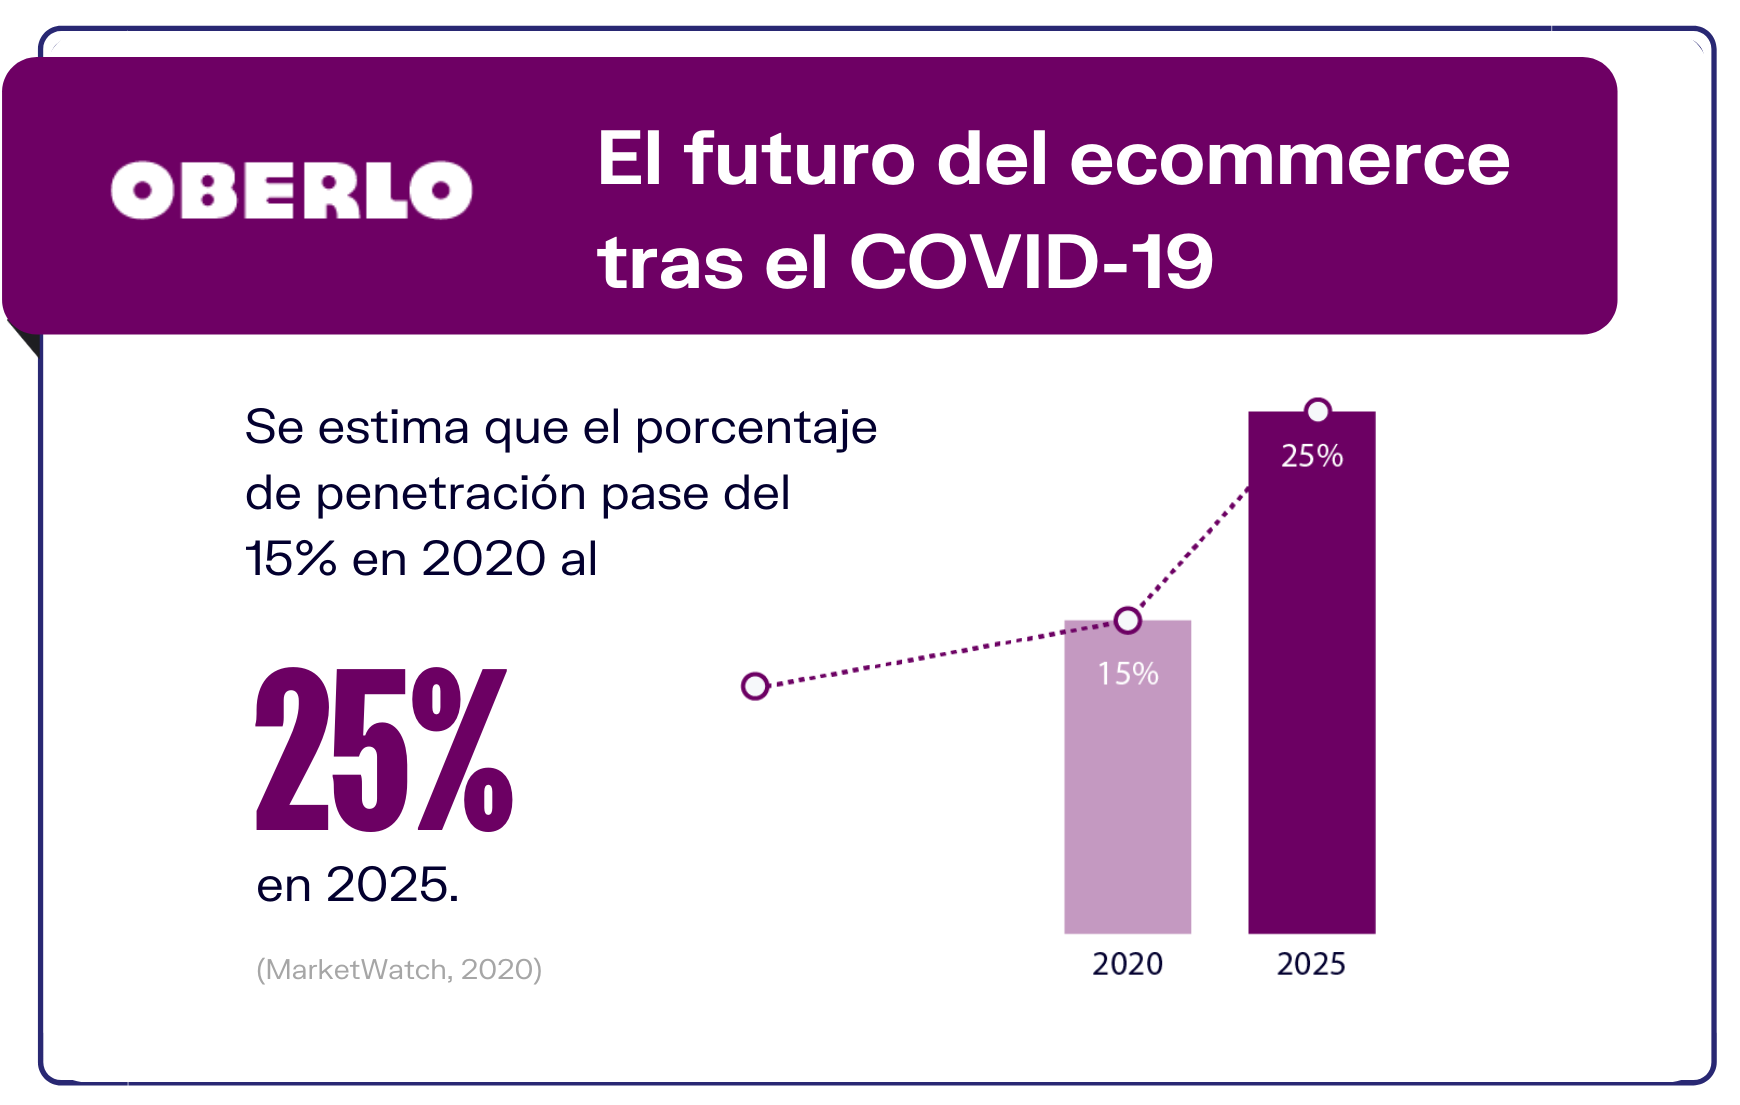 2.El futuro del Ecommerce post Covid-19